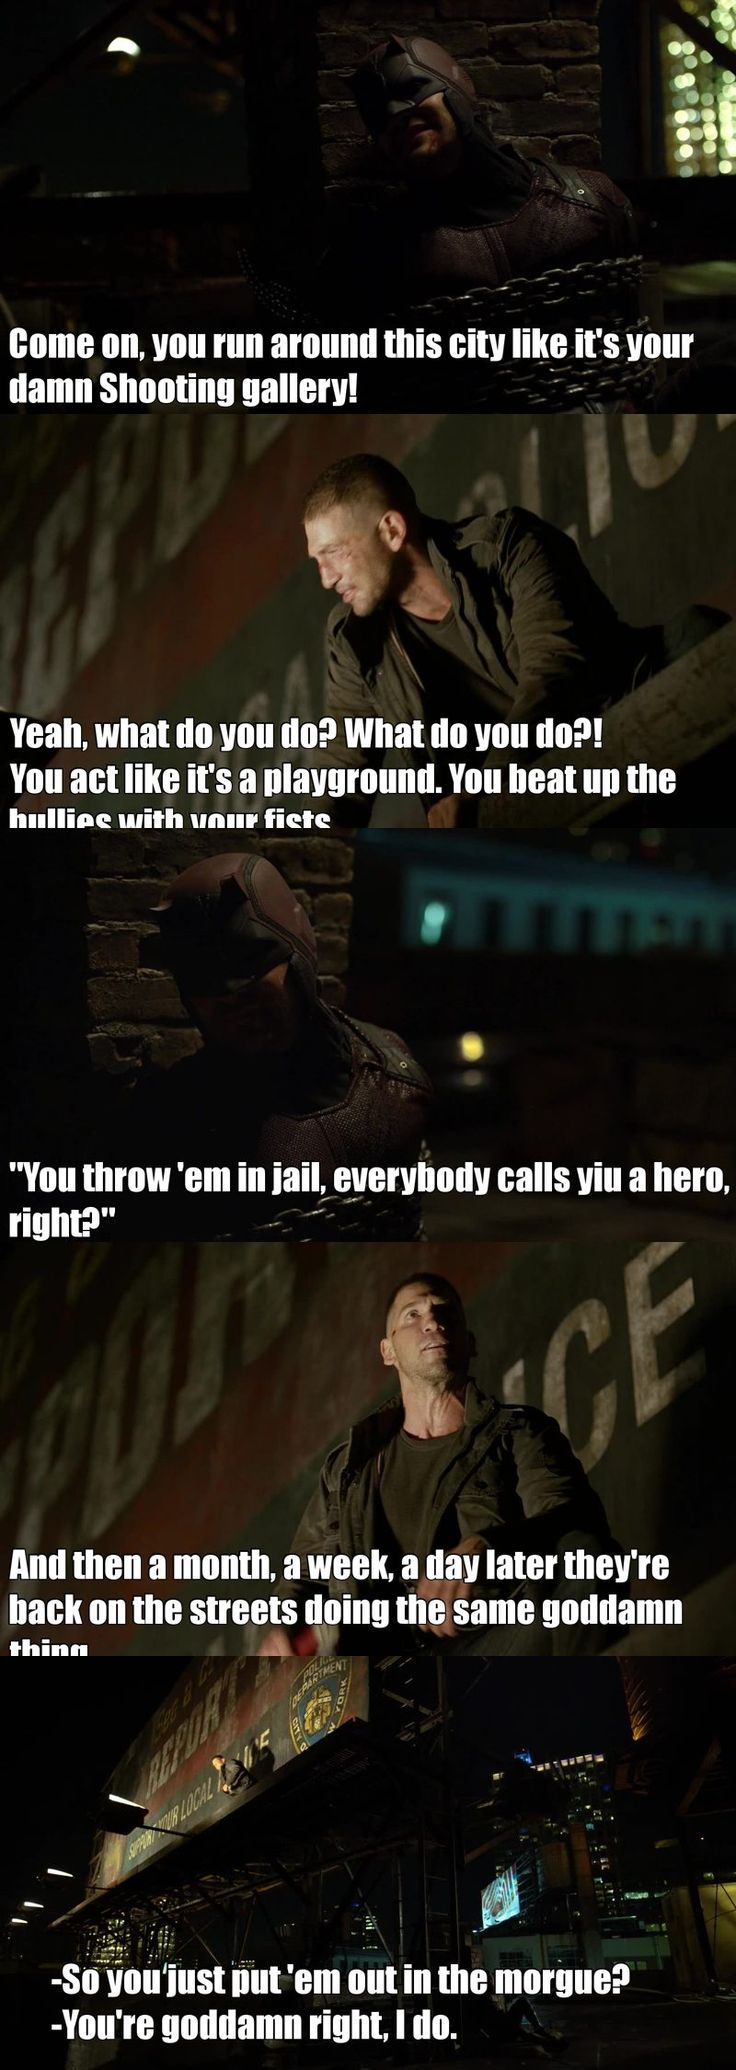 What a brilliant actor this guy is (Jon Bernthal aka The Punisher). The way he depicts in this scene is damn accurate! Love The Punisher!